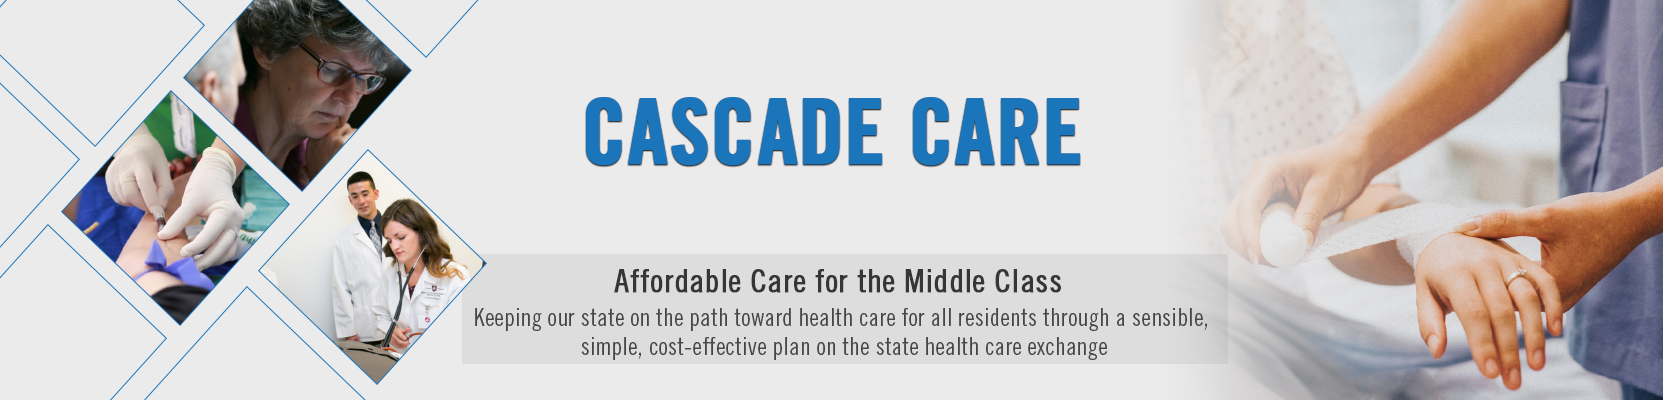 Cascade Care is the next step in accessible and affordable health care for everyone